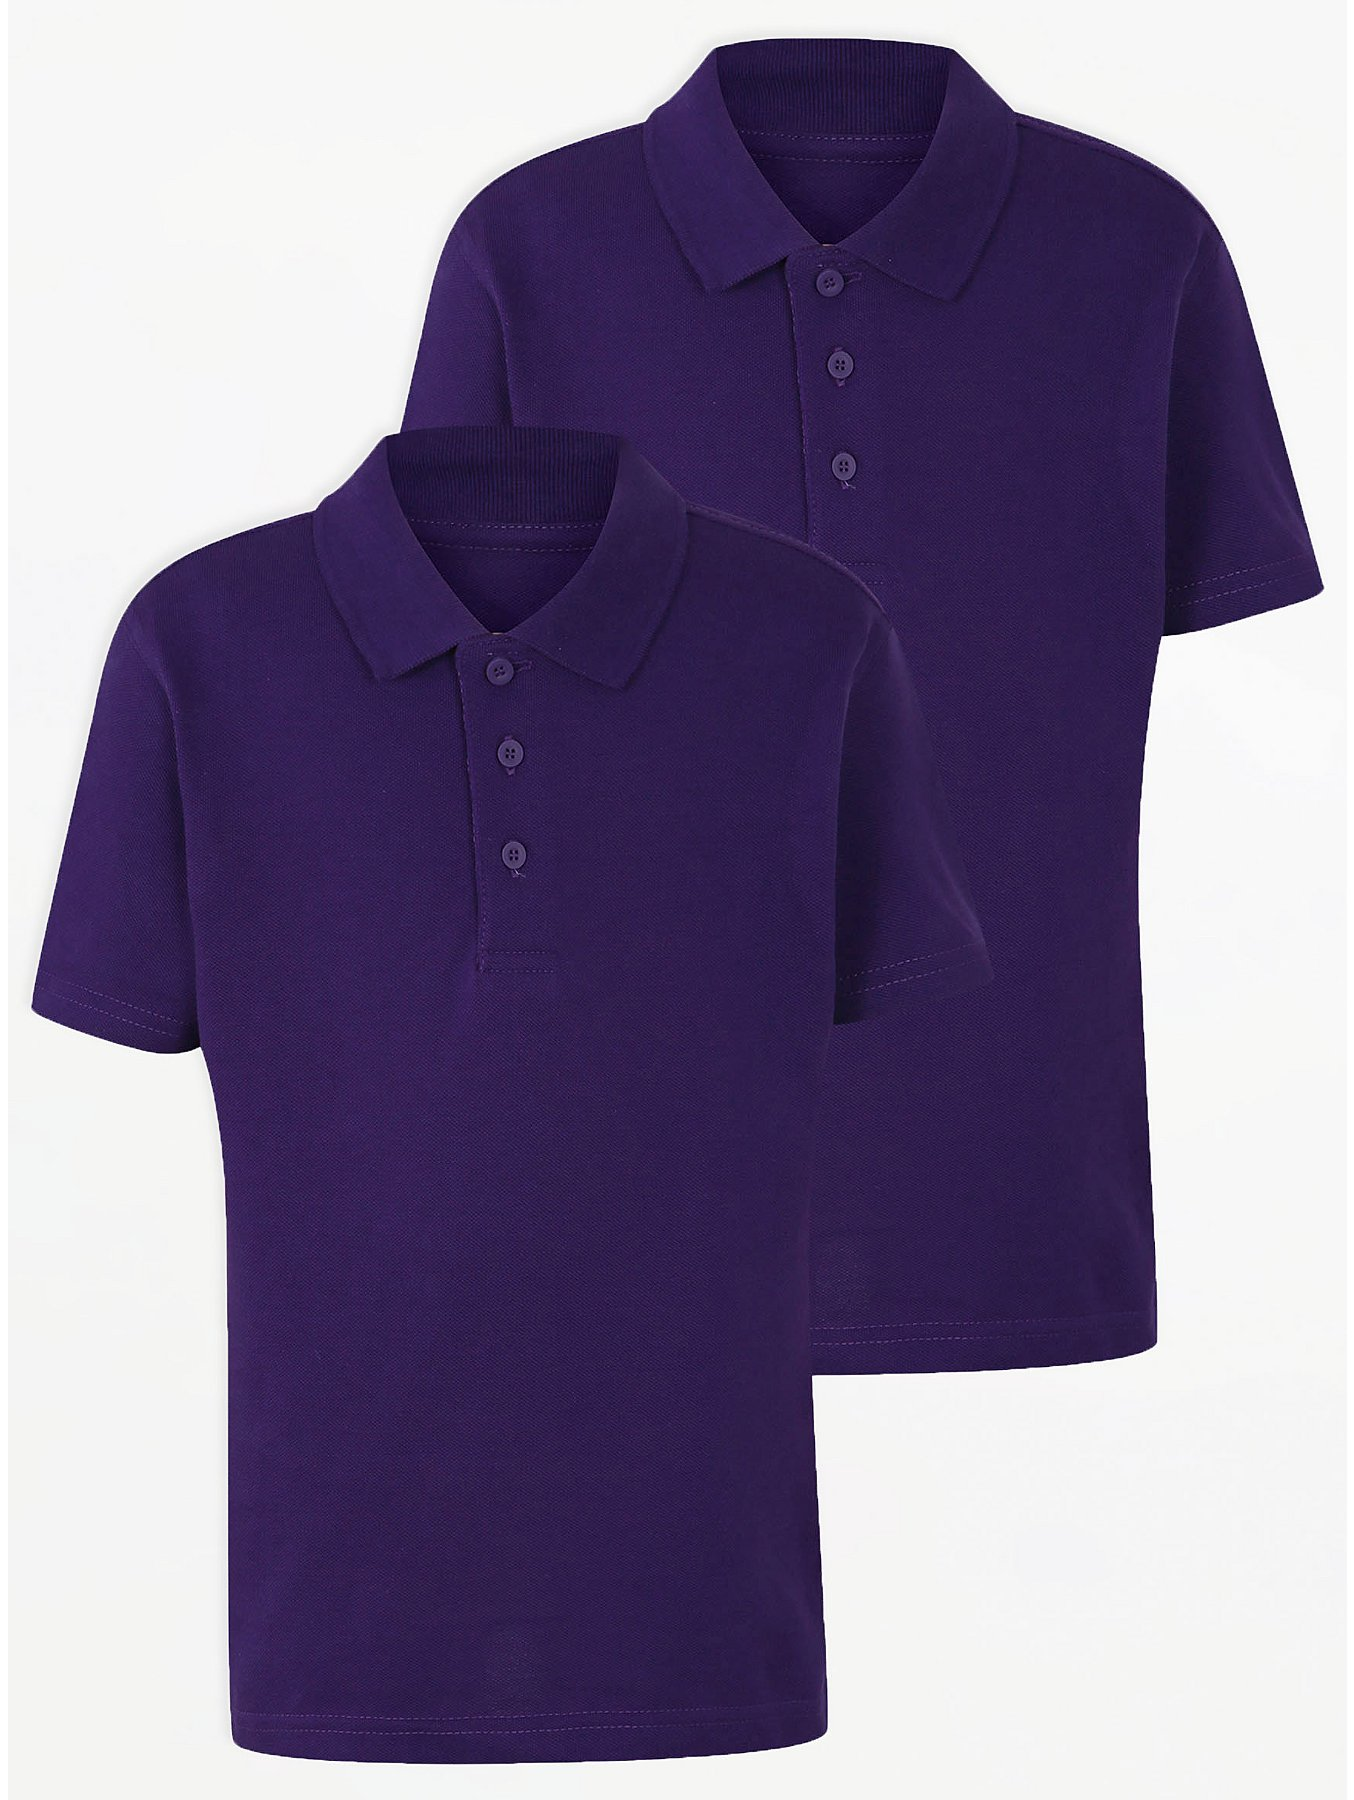 3dcadee94 Purple School Polo Shirt 2 Pack | School | George